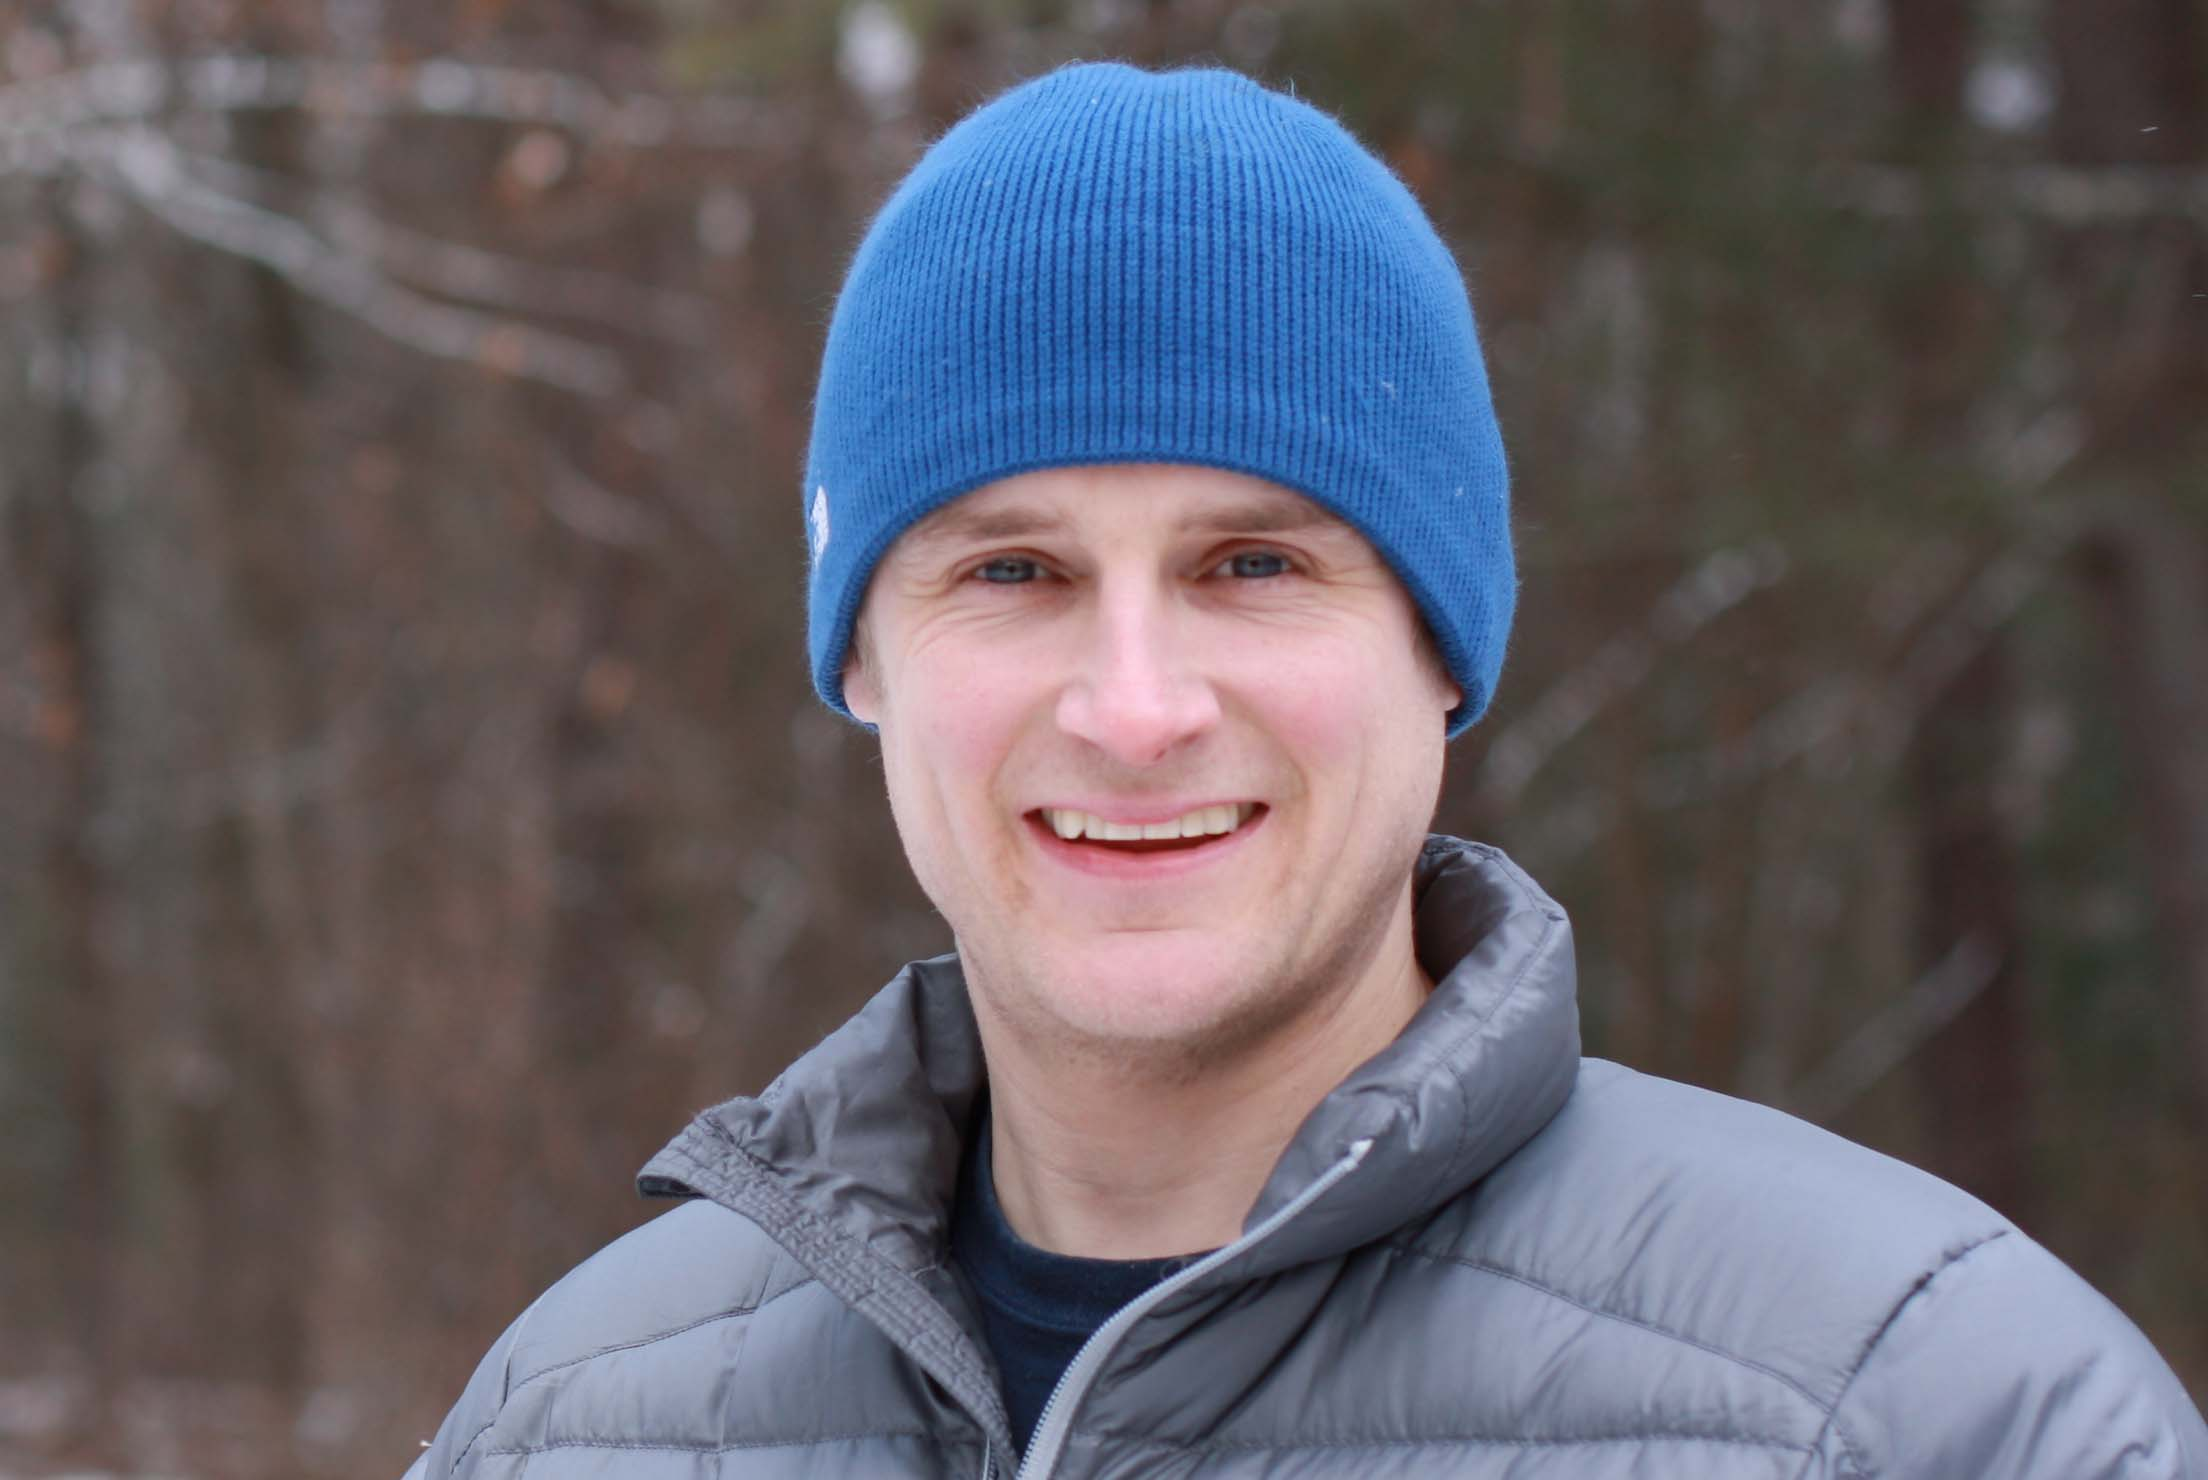 When not MITgcming Condron enjoys canoeing, hiking, cross country skiing and surfing. He has been using MITgcm since 2007.